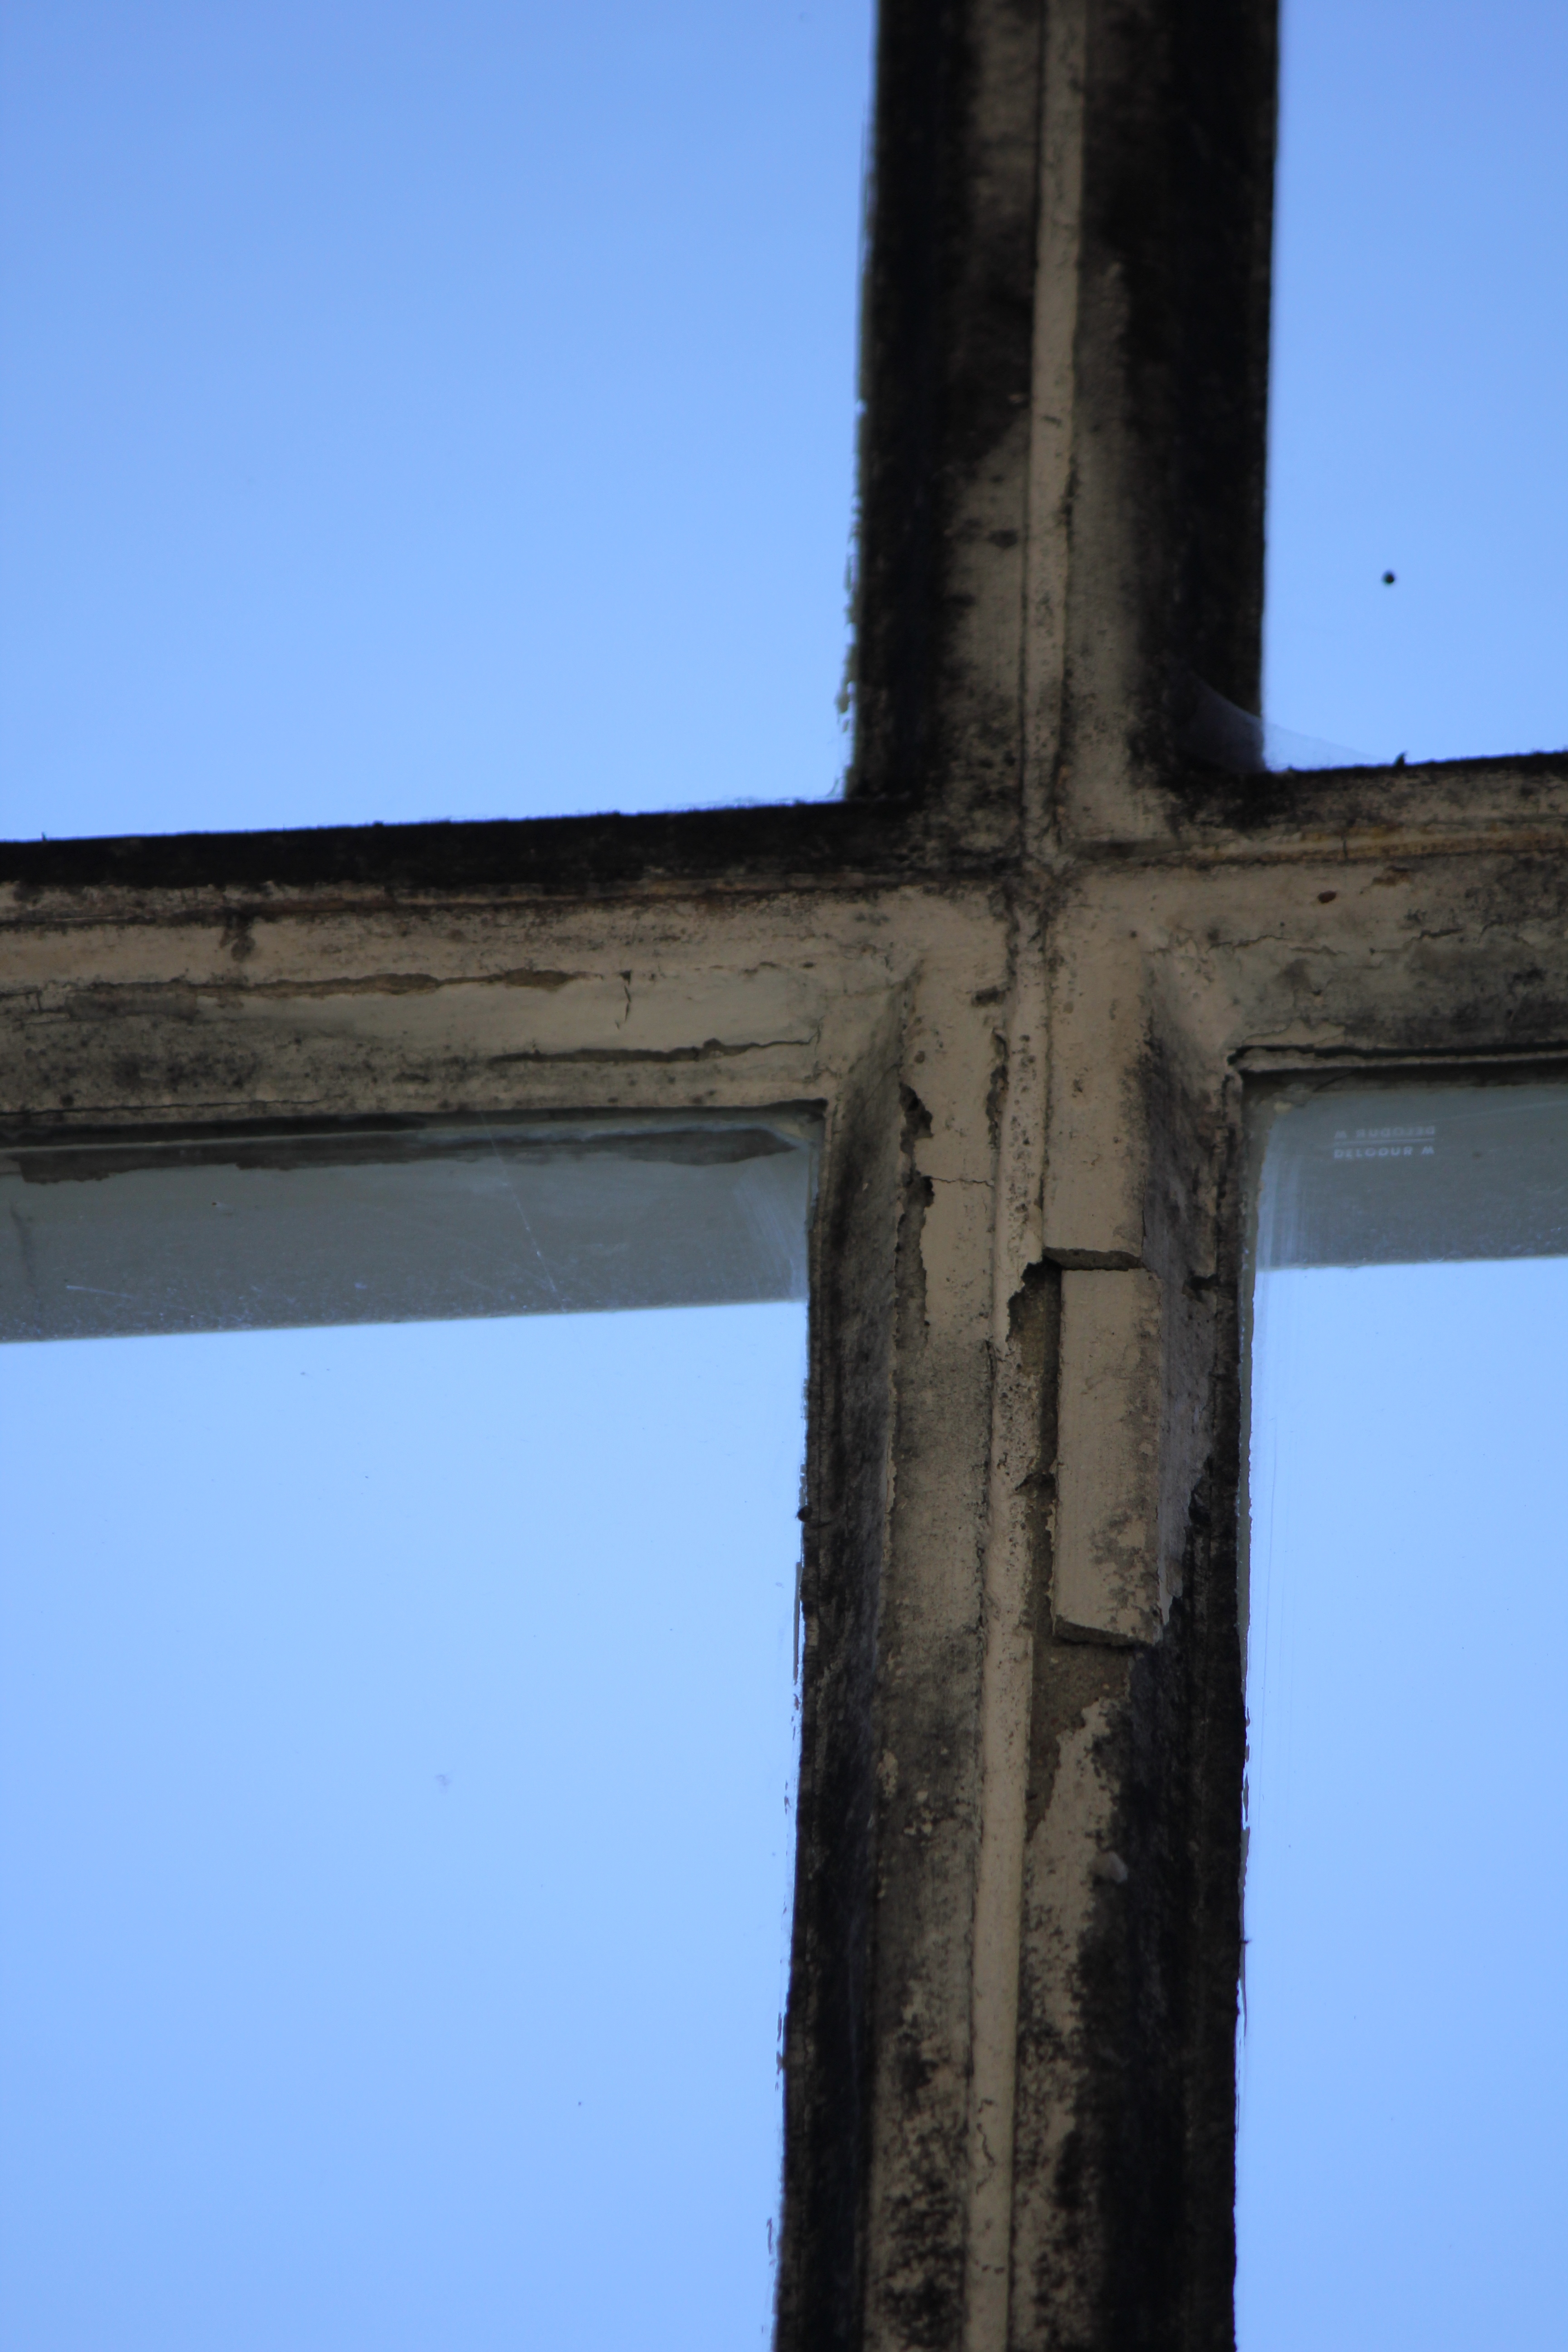 Cross Build Of Mullion And Transom Of A Window Cc0 Photo